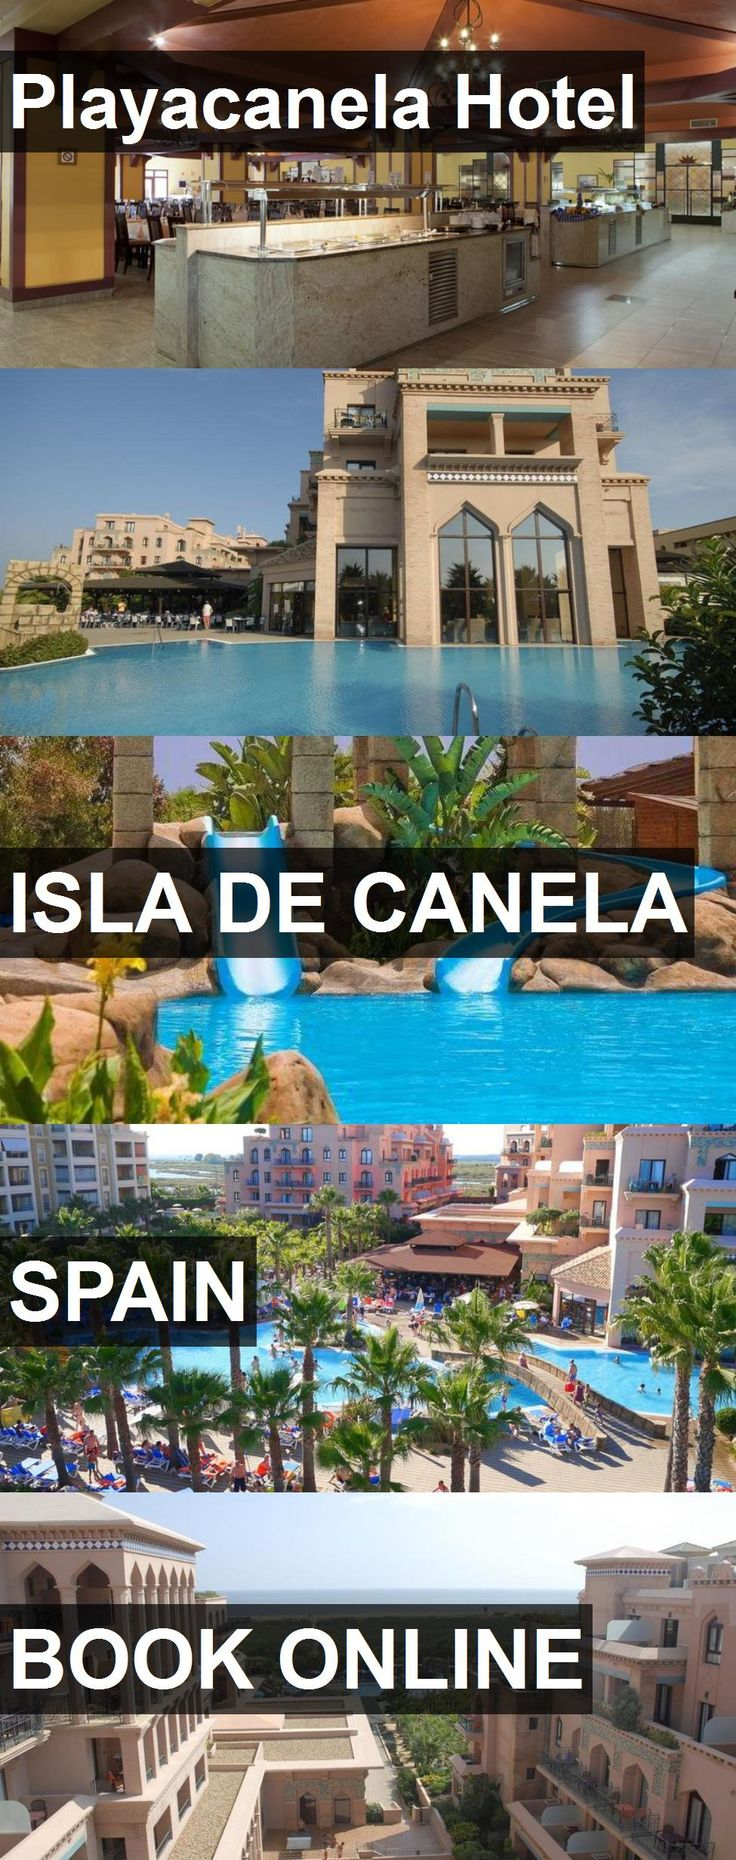 Playacanela Hotel in Isla de Canela, Spain. For more information, photos, reviews and best prices please follow the link. #Spain #IsladeCanela #travel #vacation #hotel